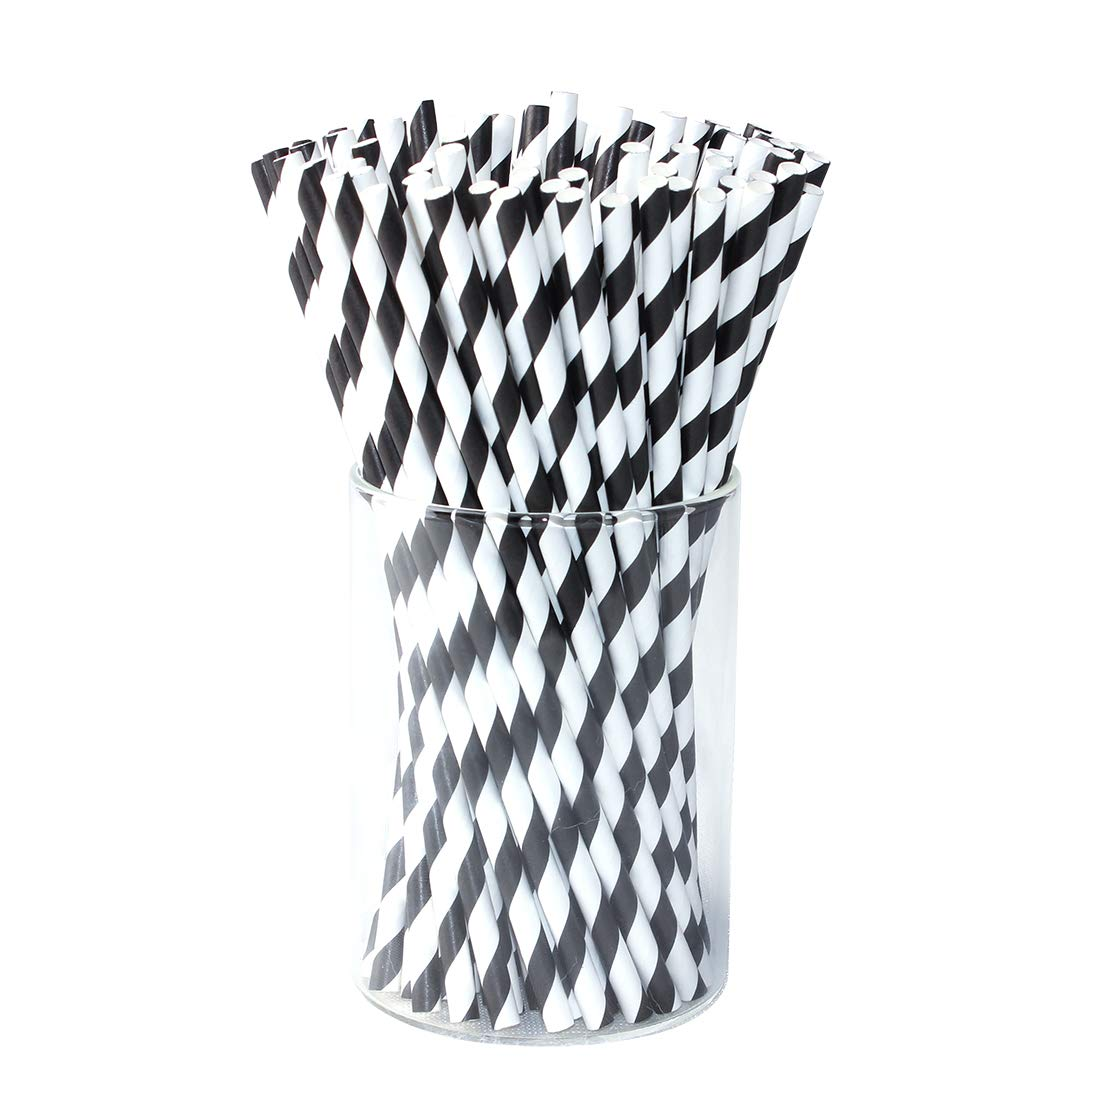 Paper Drink Straws Biodegradable Black - Value Pack 100 Pcs Eco-frendly Straws Bulk for Party Supplies | Birthday | Wedding | Bridal | Baby Shower | DIY Idea (Black&White)